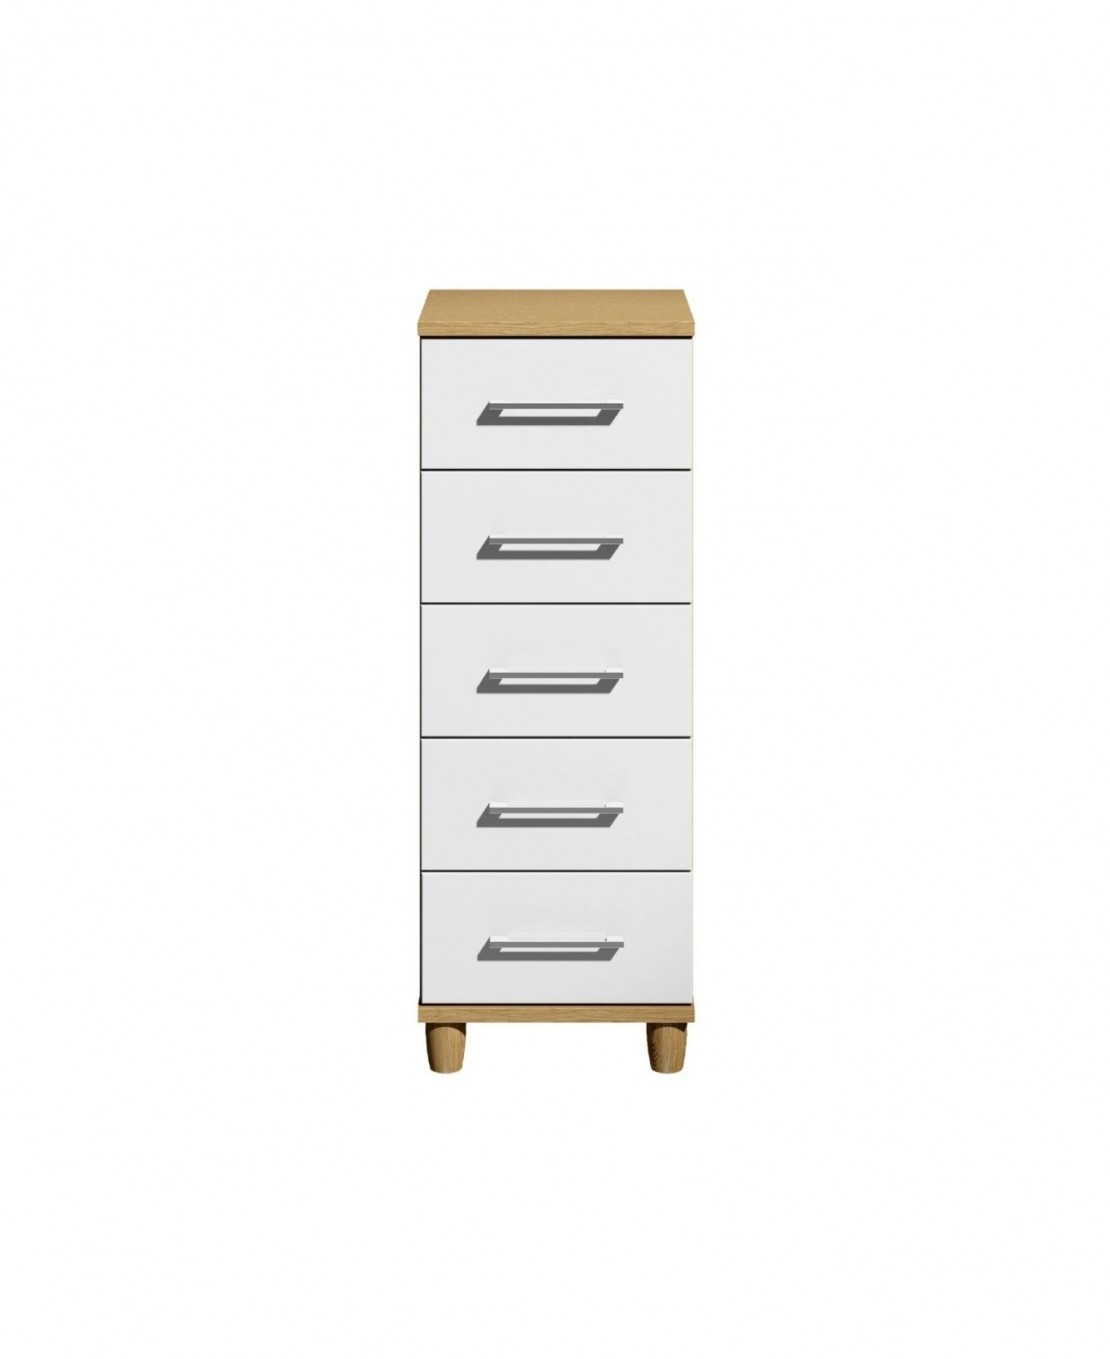 /_images/product-photos/kt-furniture-vardy-5-drawer-narrow-chest-white-a.jpg